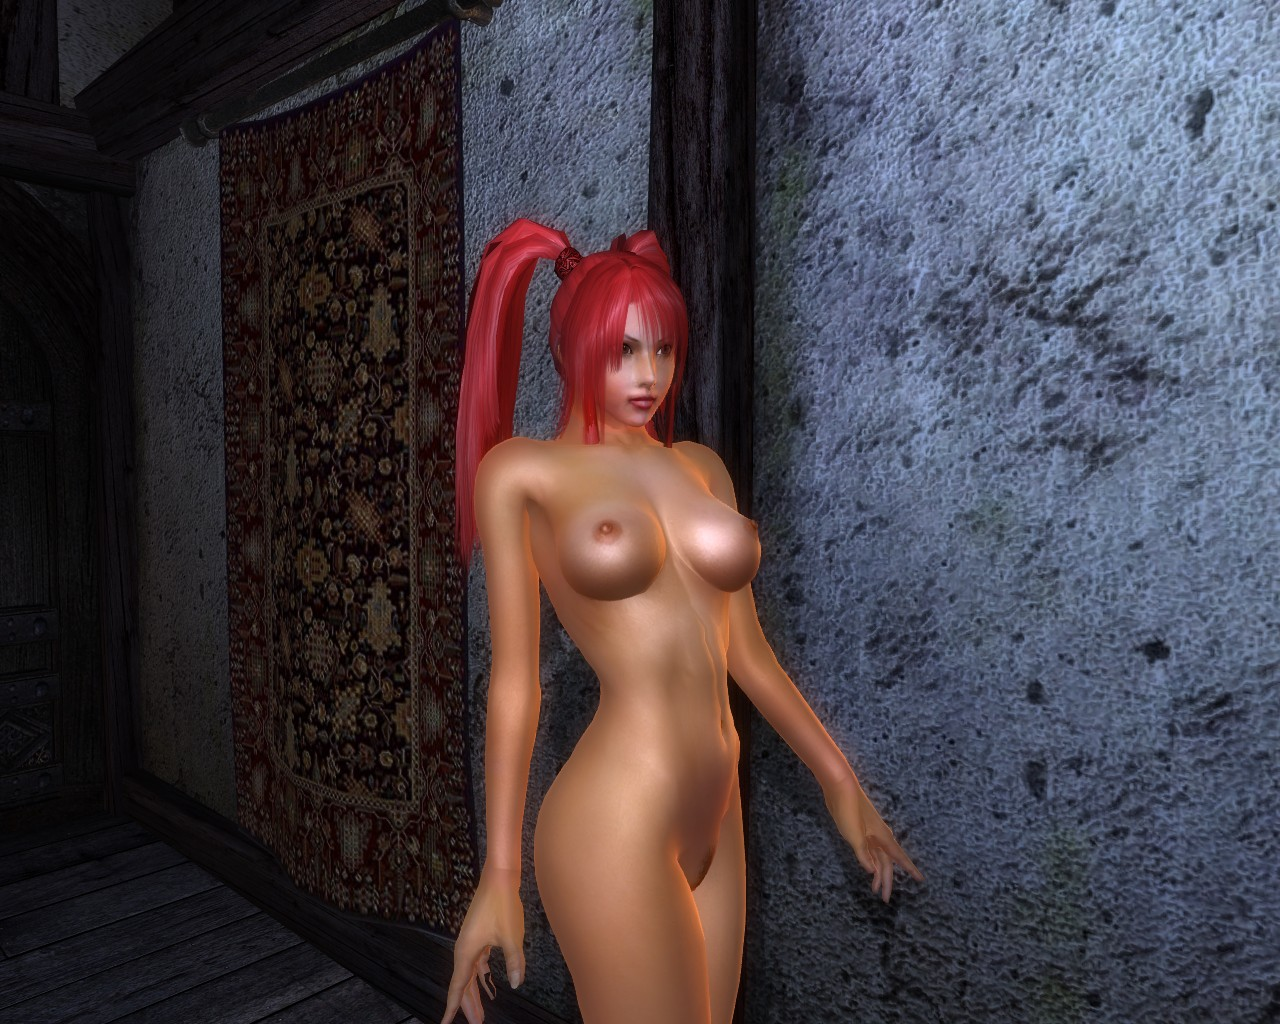 Oblivion nude females uncensored cartoon scenes